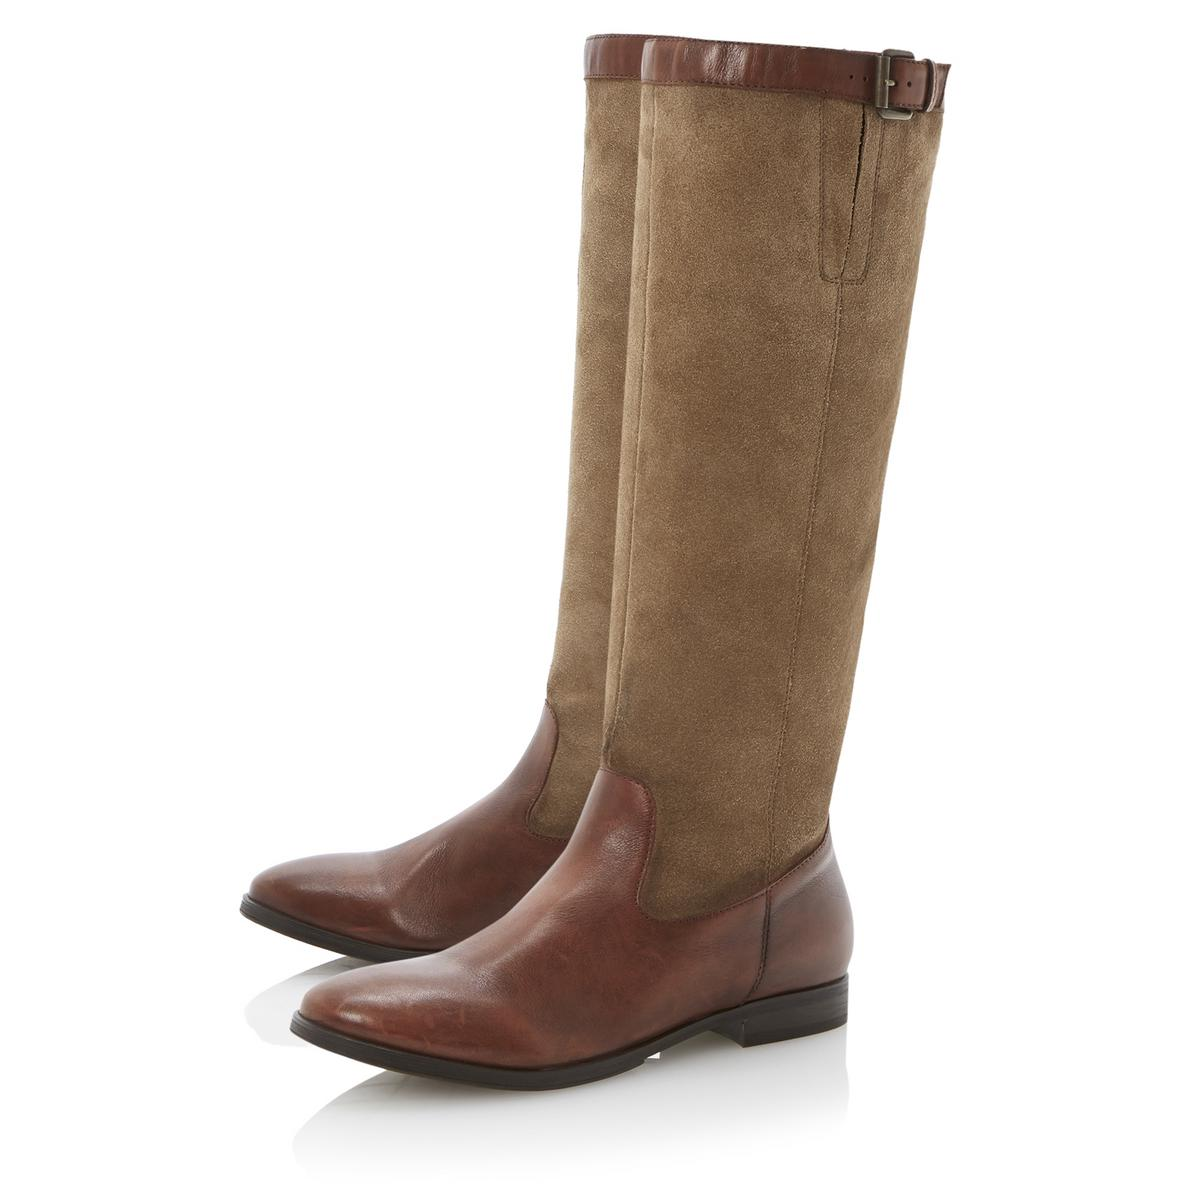 Cool  Boots For Women Women39s Merona Kasia Leather Riding Boot  Brown